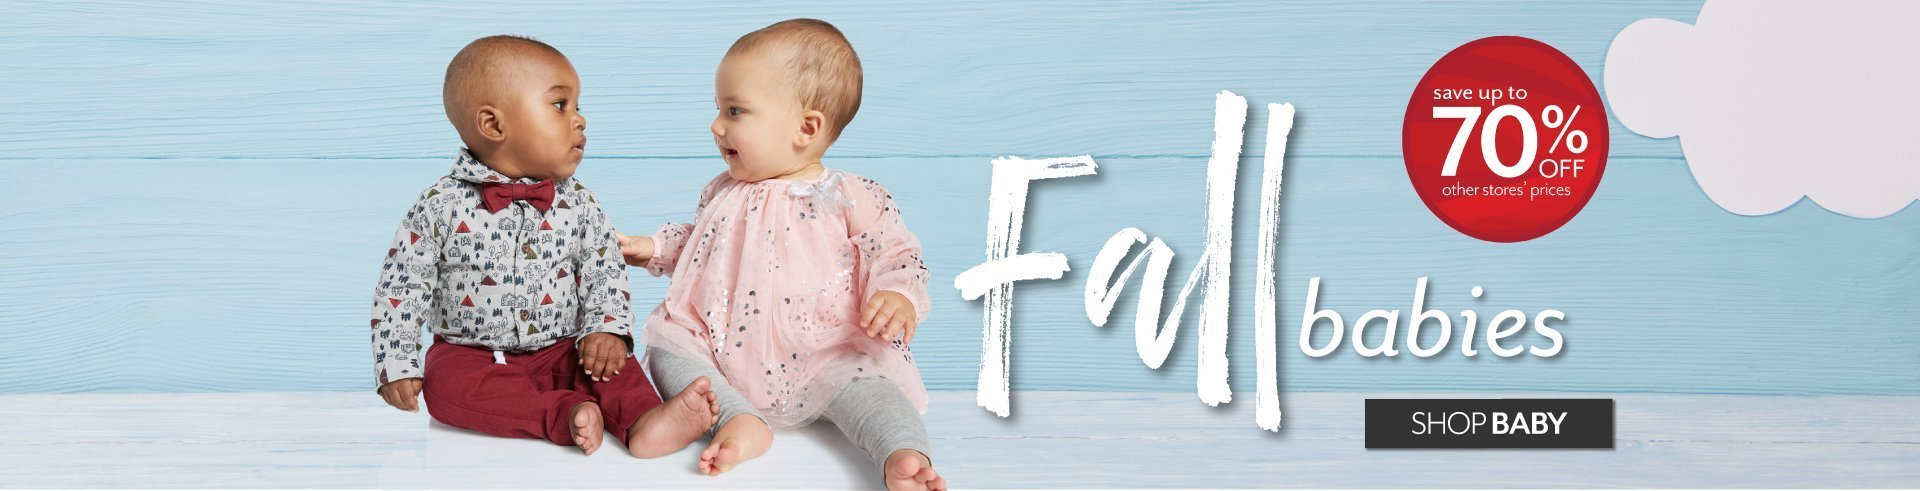 Fall Babies - Big Savings in Baby at Burkes Outlet